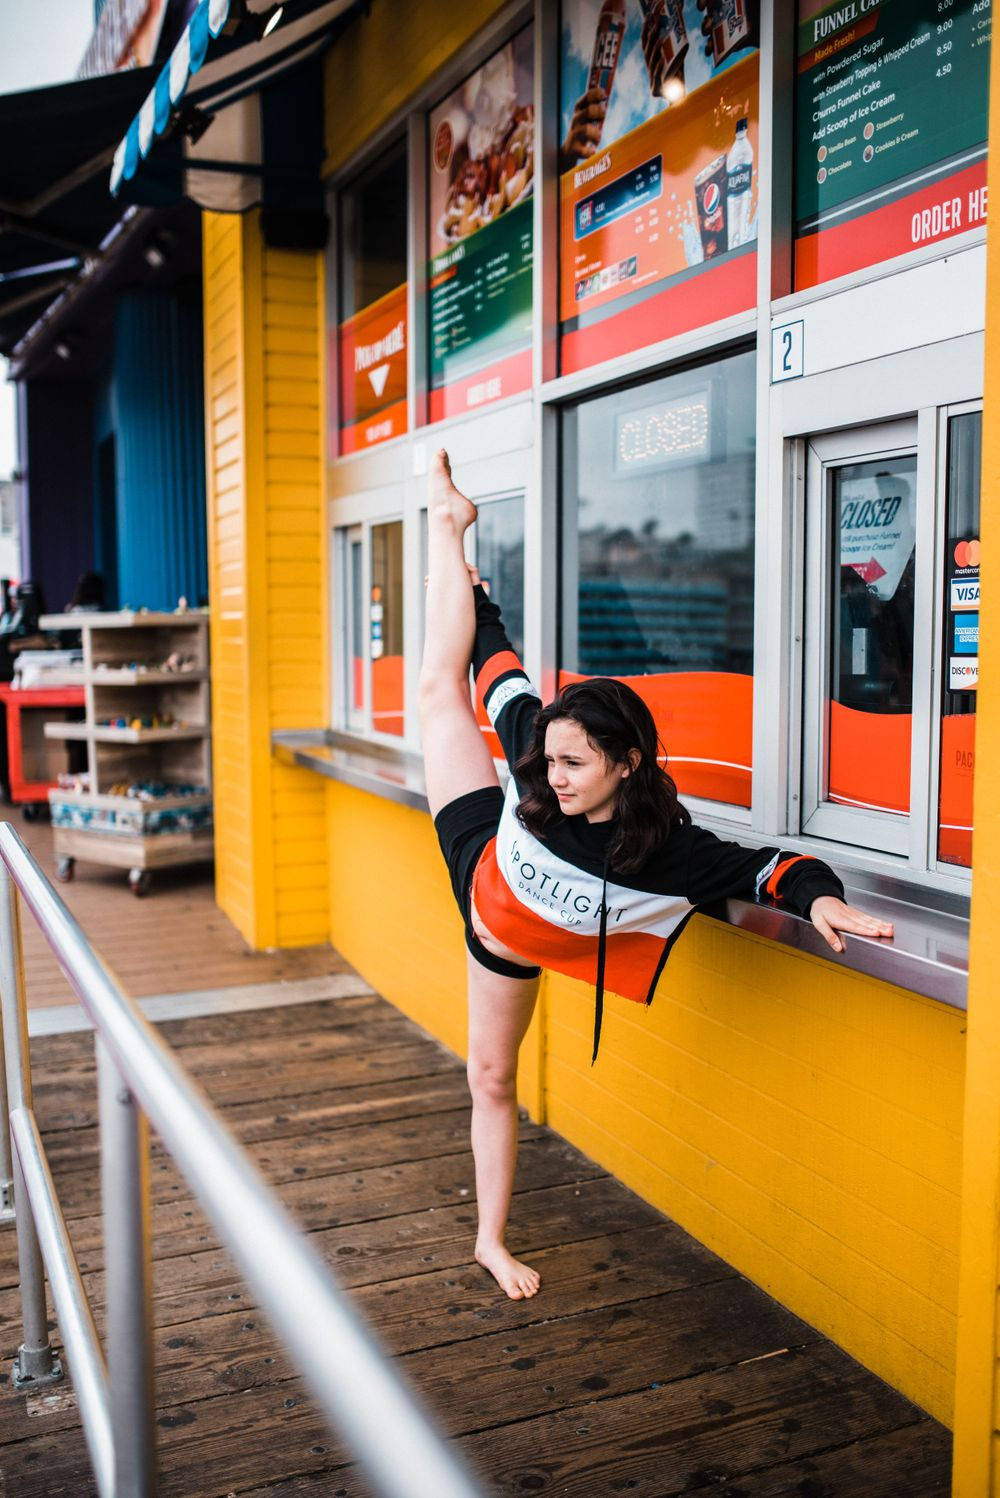 Girl dancing/doing the splits in front of a food booth at Santa Monica Pier